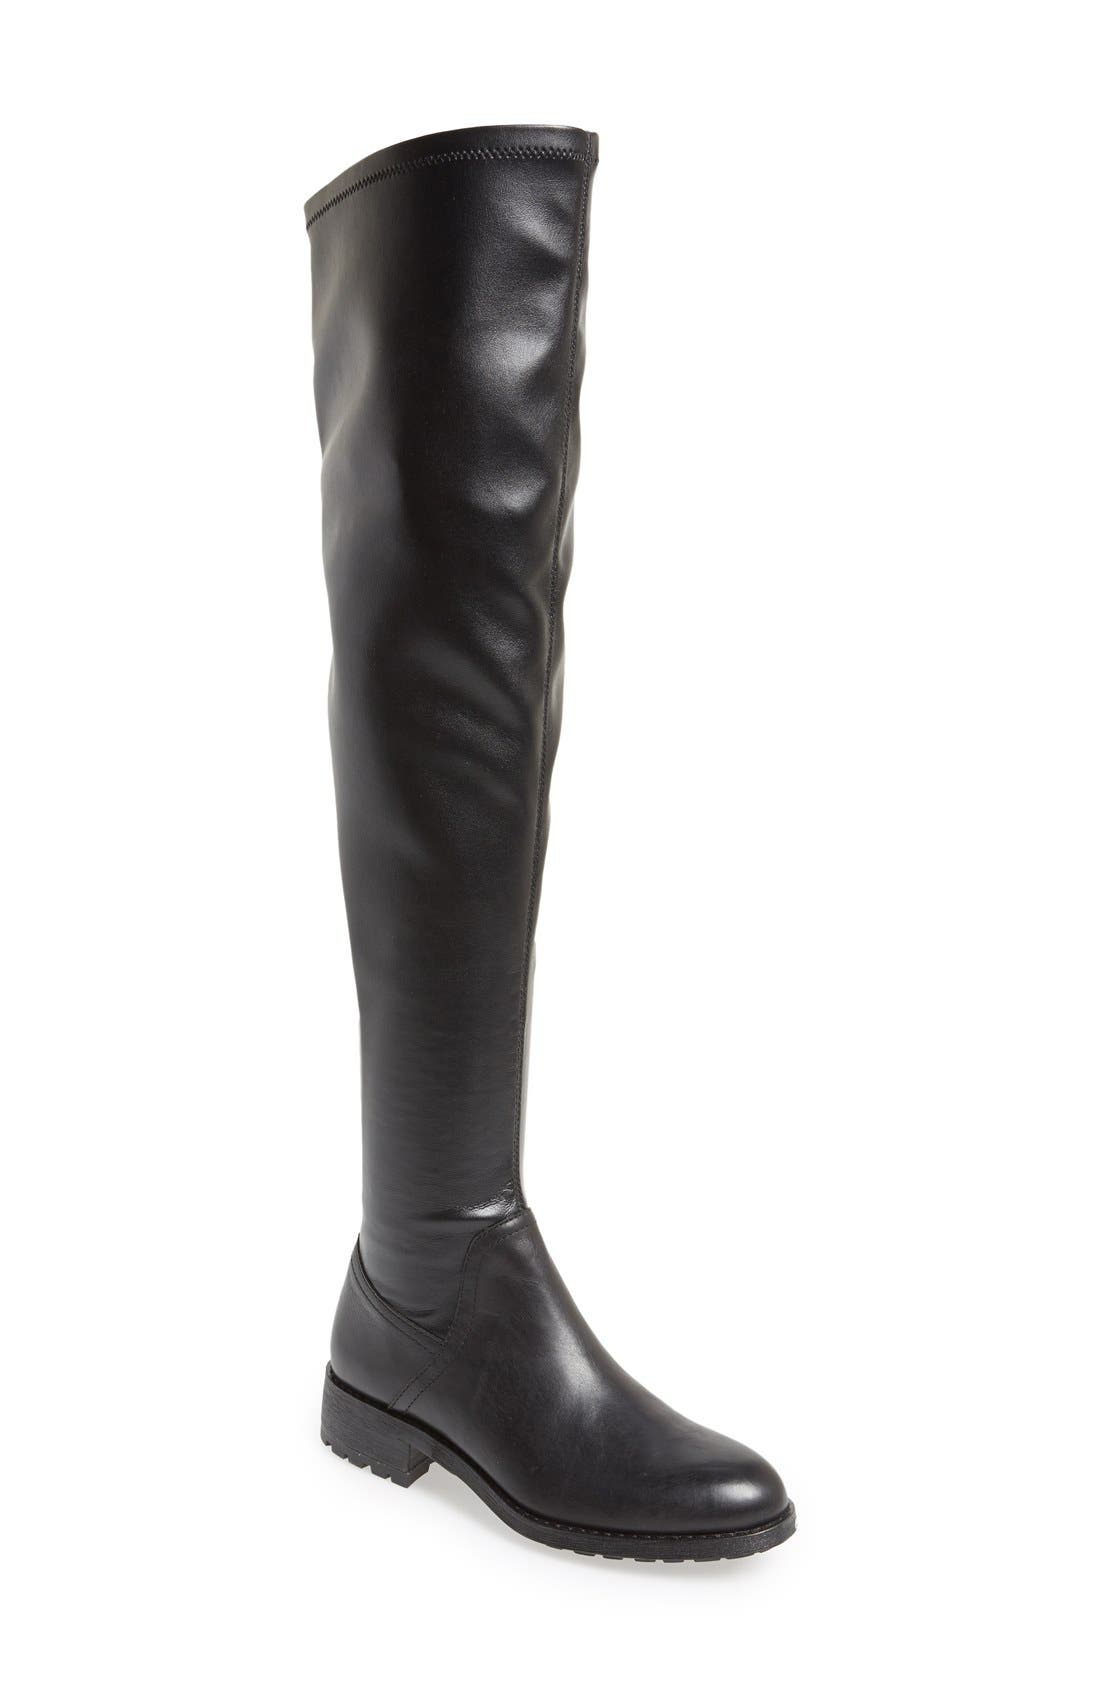 SAM EDELMAN 'Remi' Over The Knee Boot, Main, color, 001